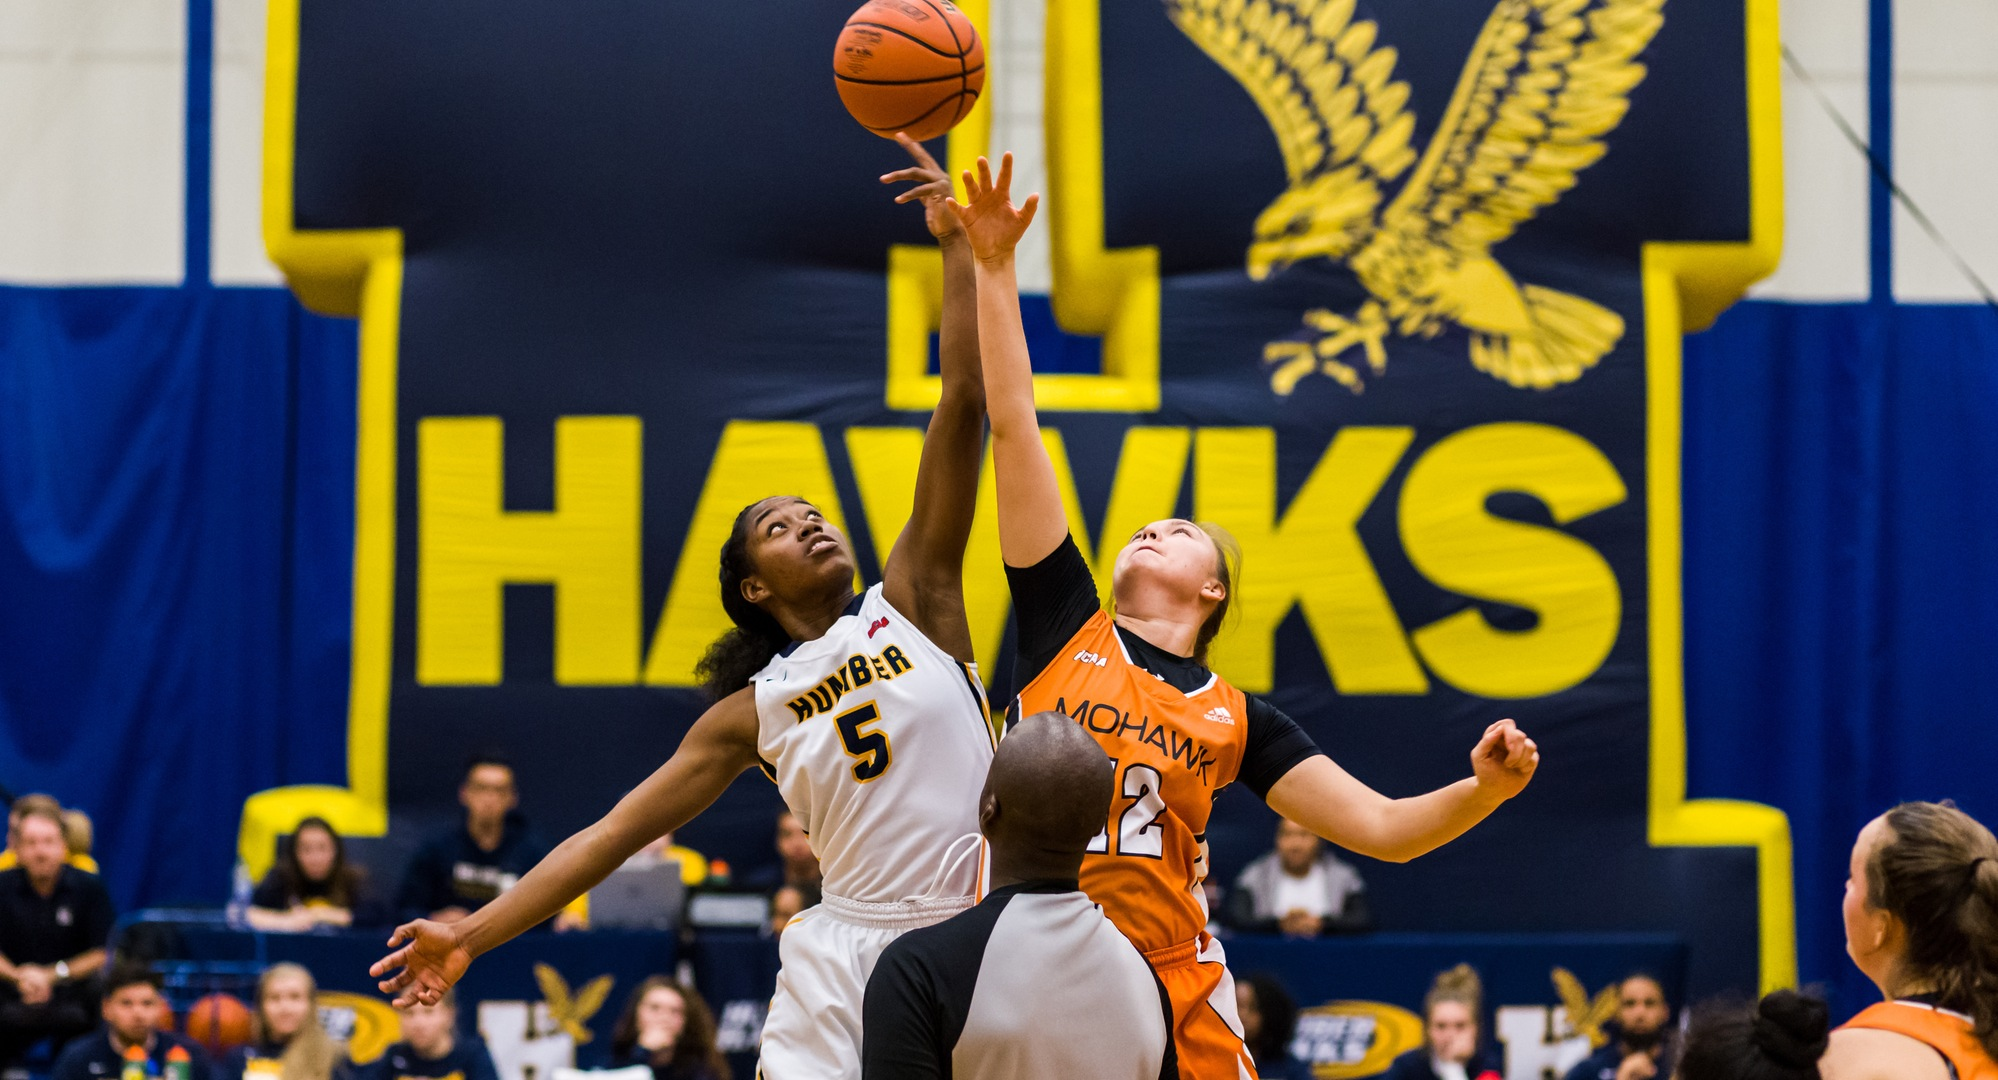 HAWKS ROLL TO 92-63 WIN OVER RIVAL MOHAWK AT HOME